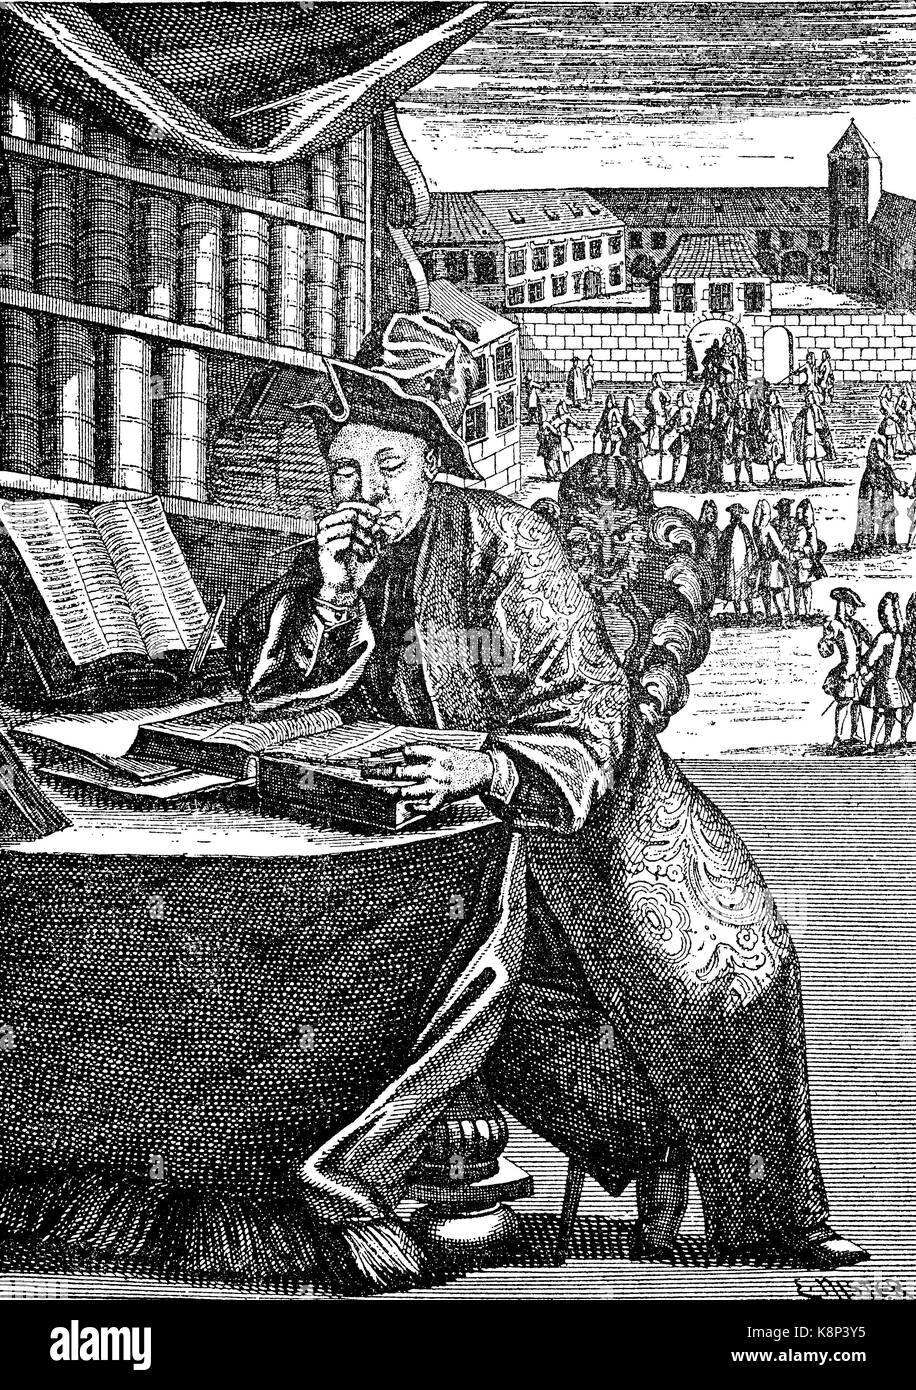 The diligent student, Der fleißige Student, 1710, digital improved reproduction of a woodcut, published in - Stock Image